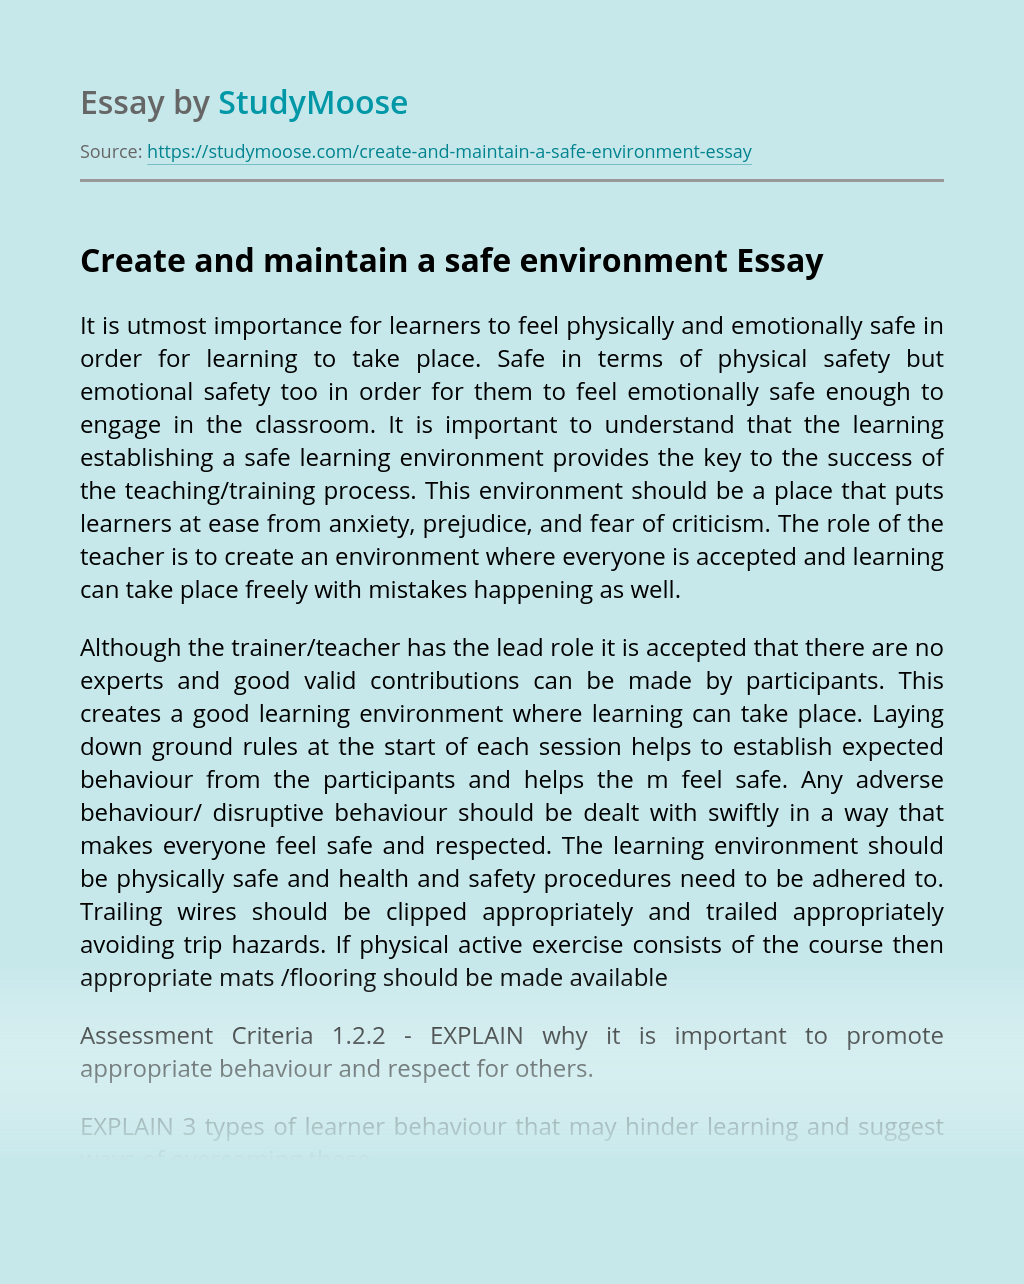 Create and maintain a safe environment